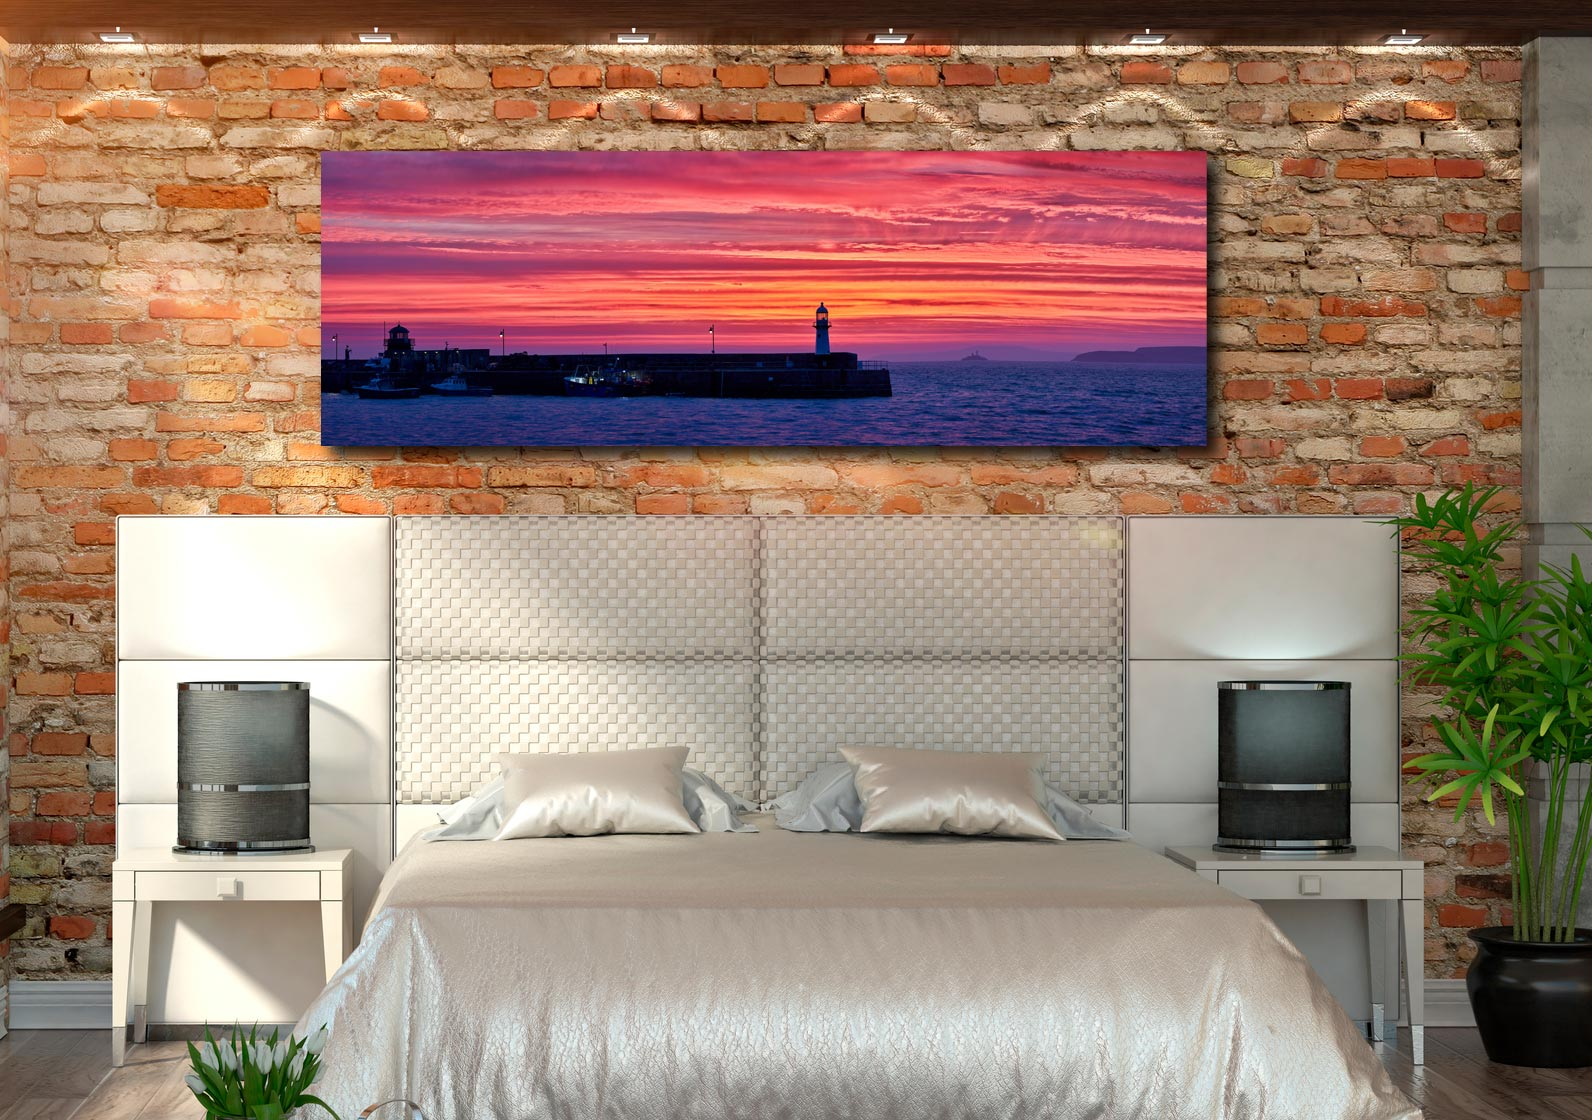 Burning skies over St Ives Harbor and Godrevy Lighthouse before dawn - Print Aluminium Backing With Acrylic Glazing on Wall